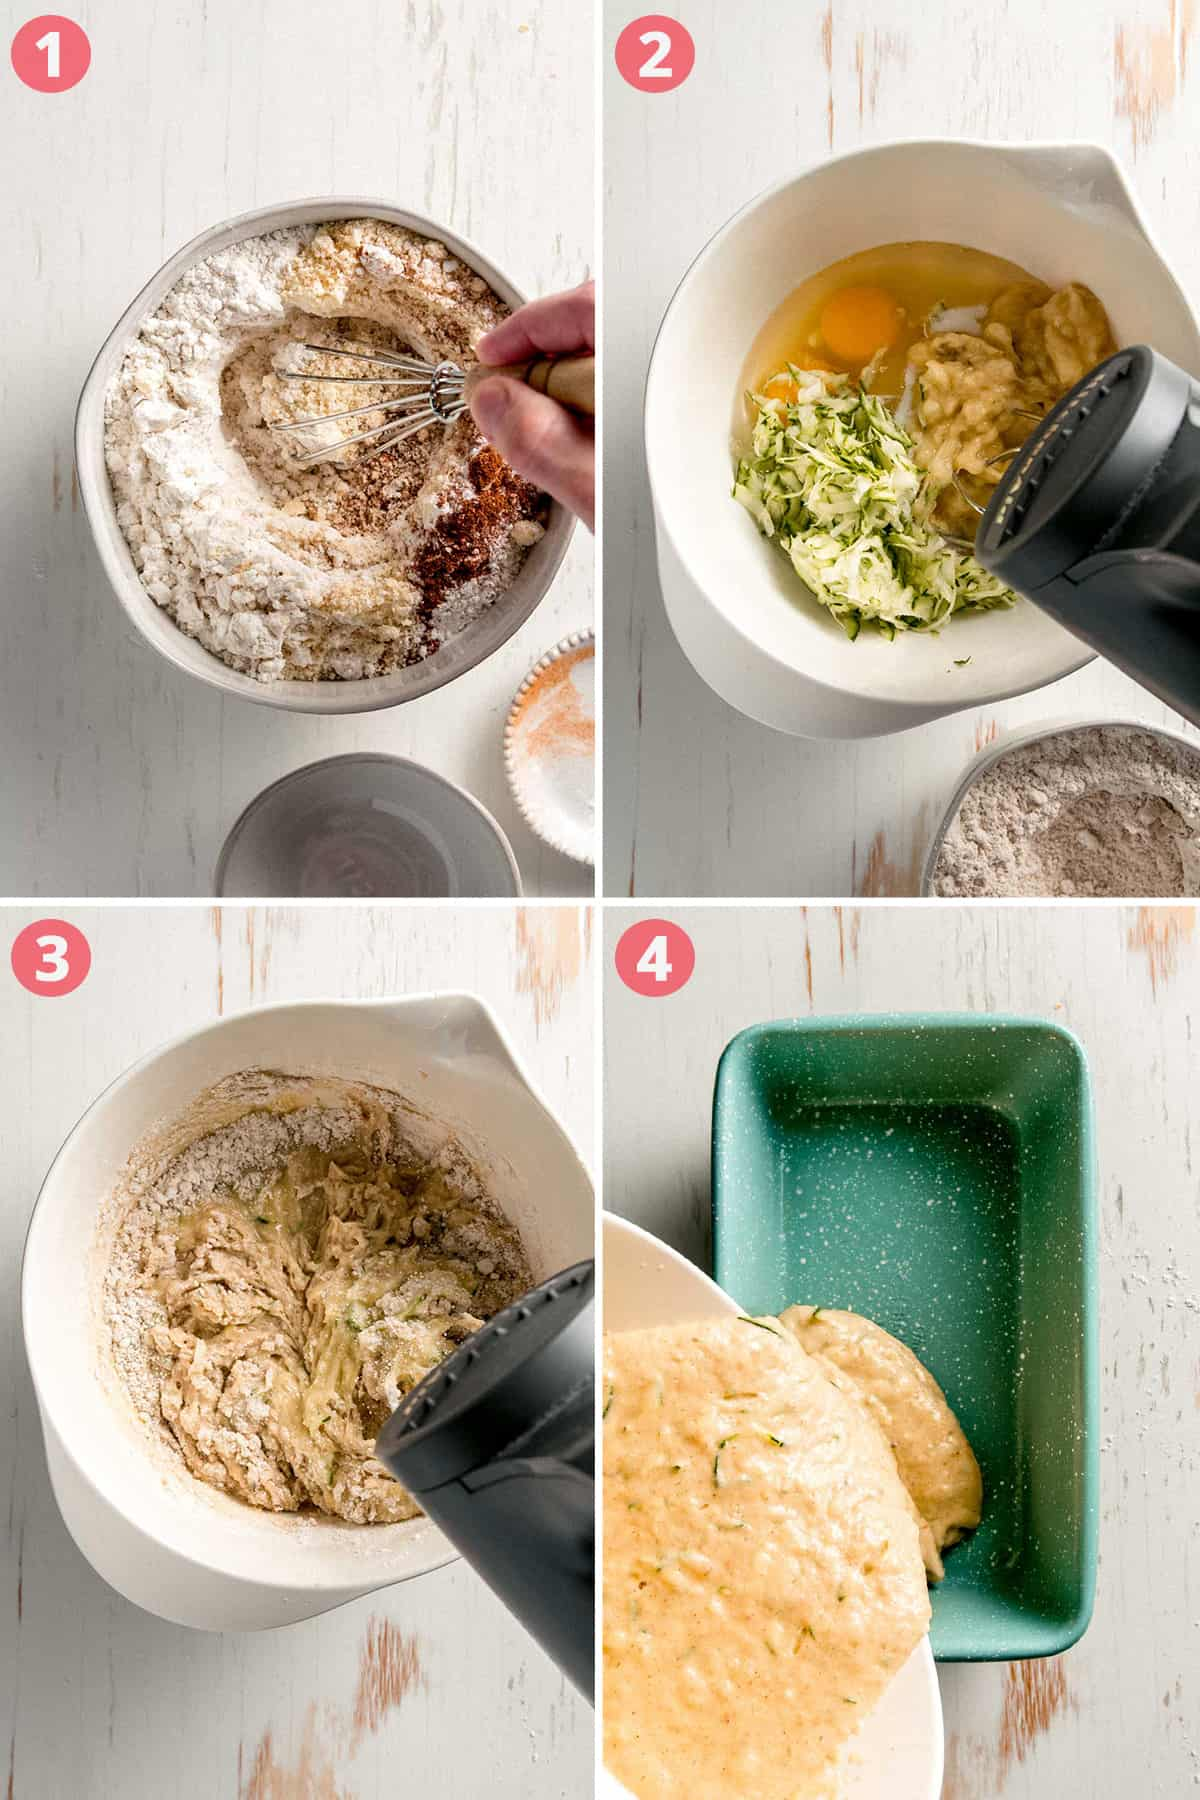 Image collage: mixing dry ingredients, blending wet ingredients, blending all together, pouring into a loaf pan.